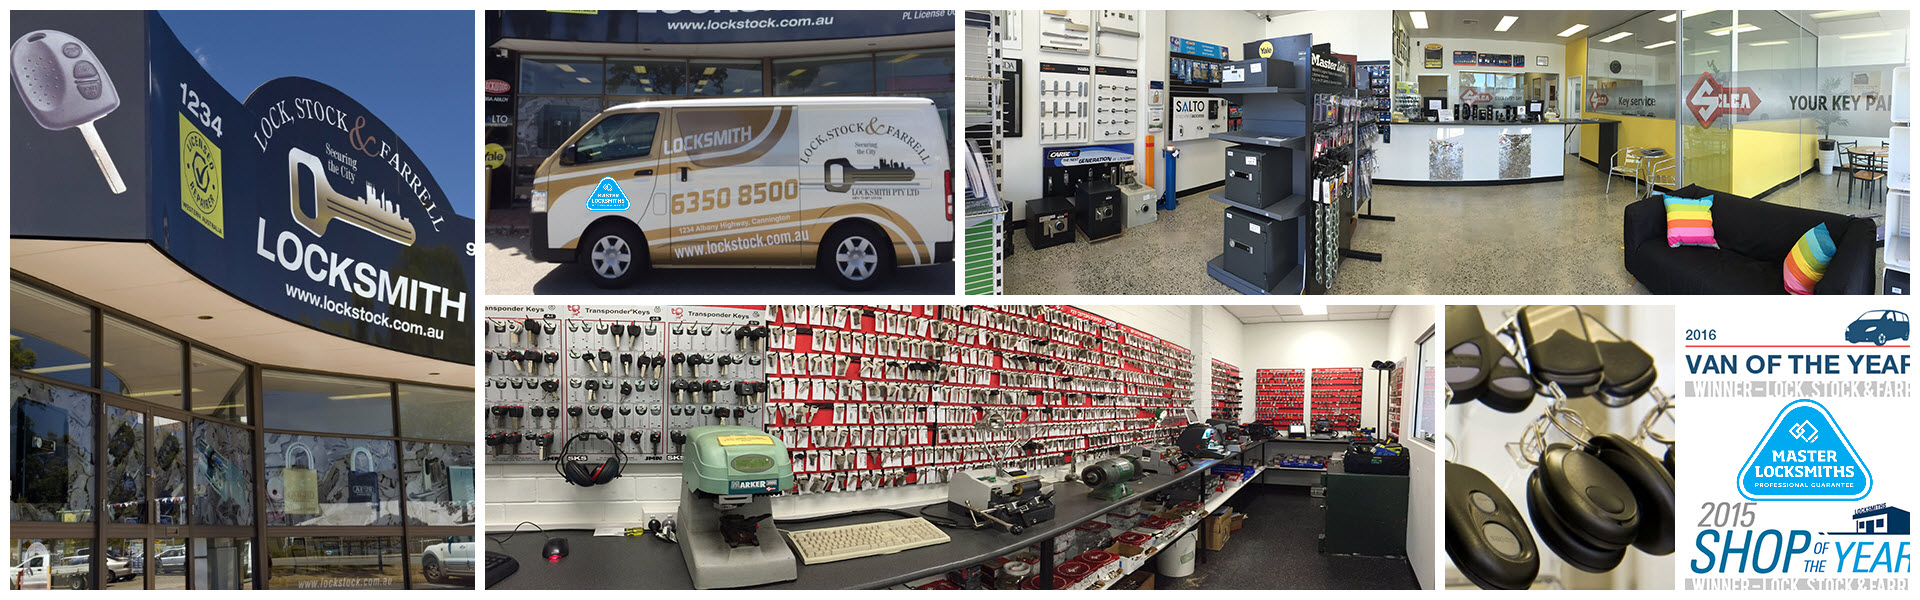 Perth Mobile Locksmith and Locksmith Shop